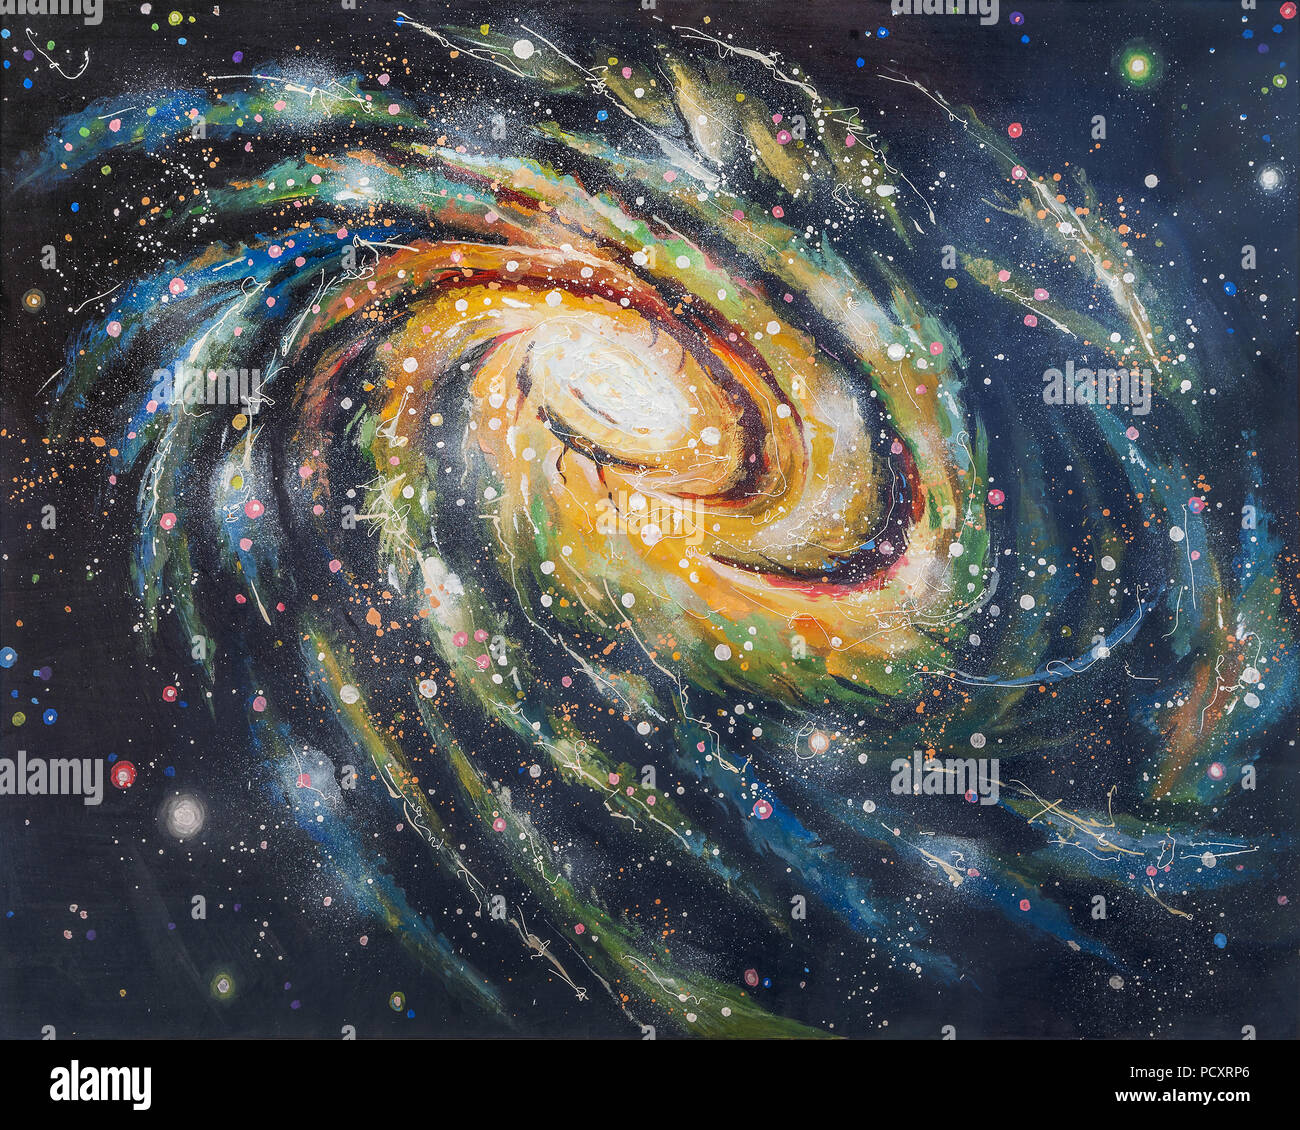 spiral galaxy painting stock photos spiral galaxy painting stock